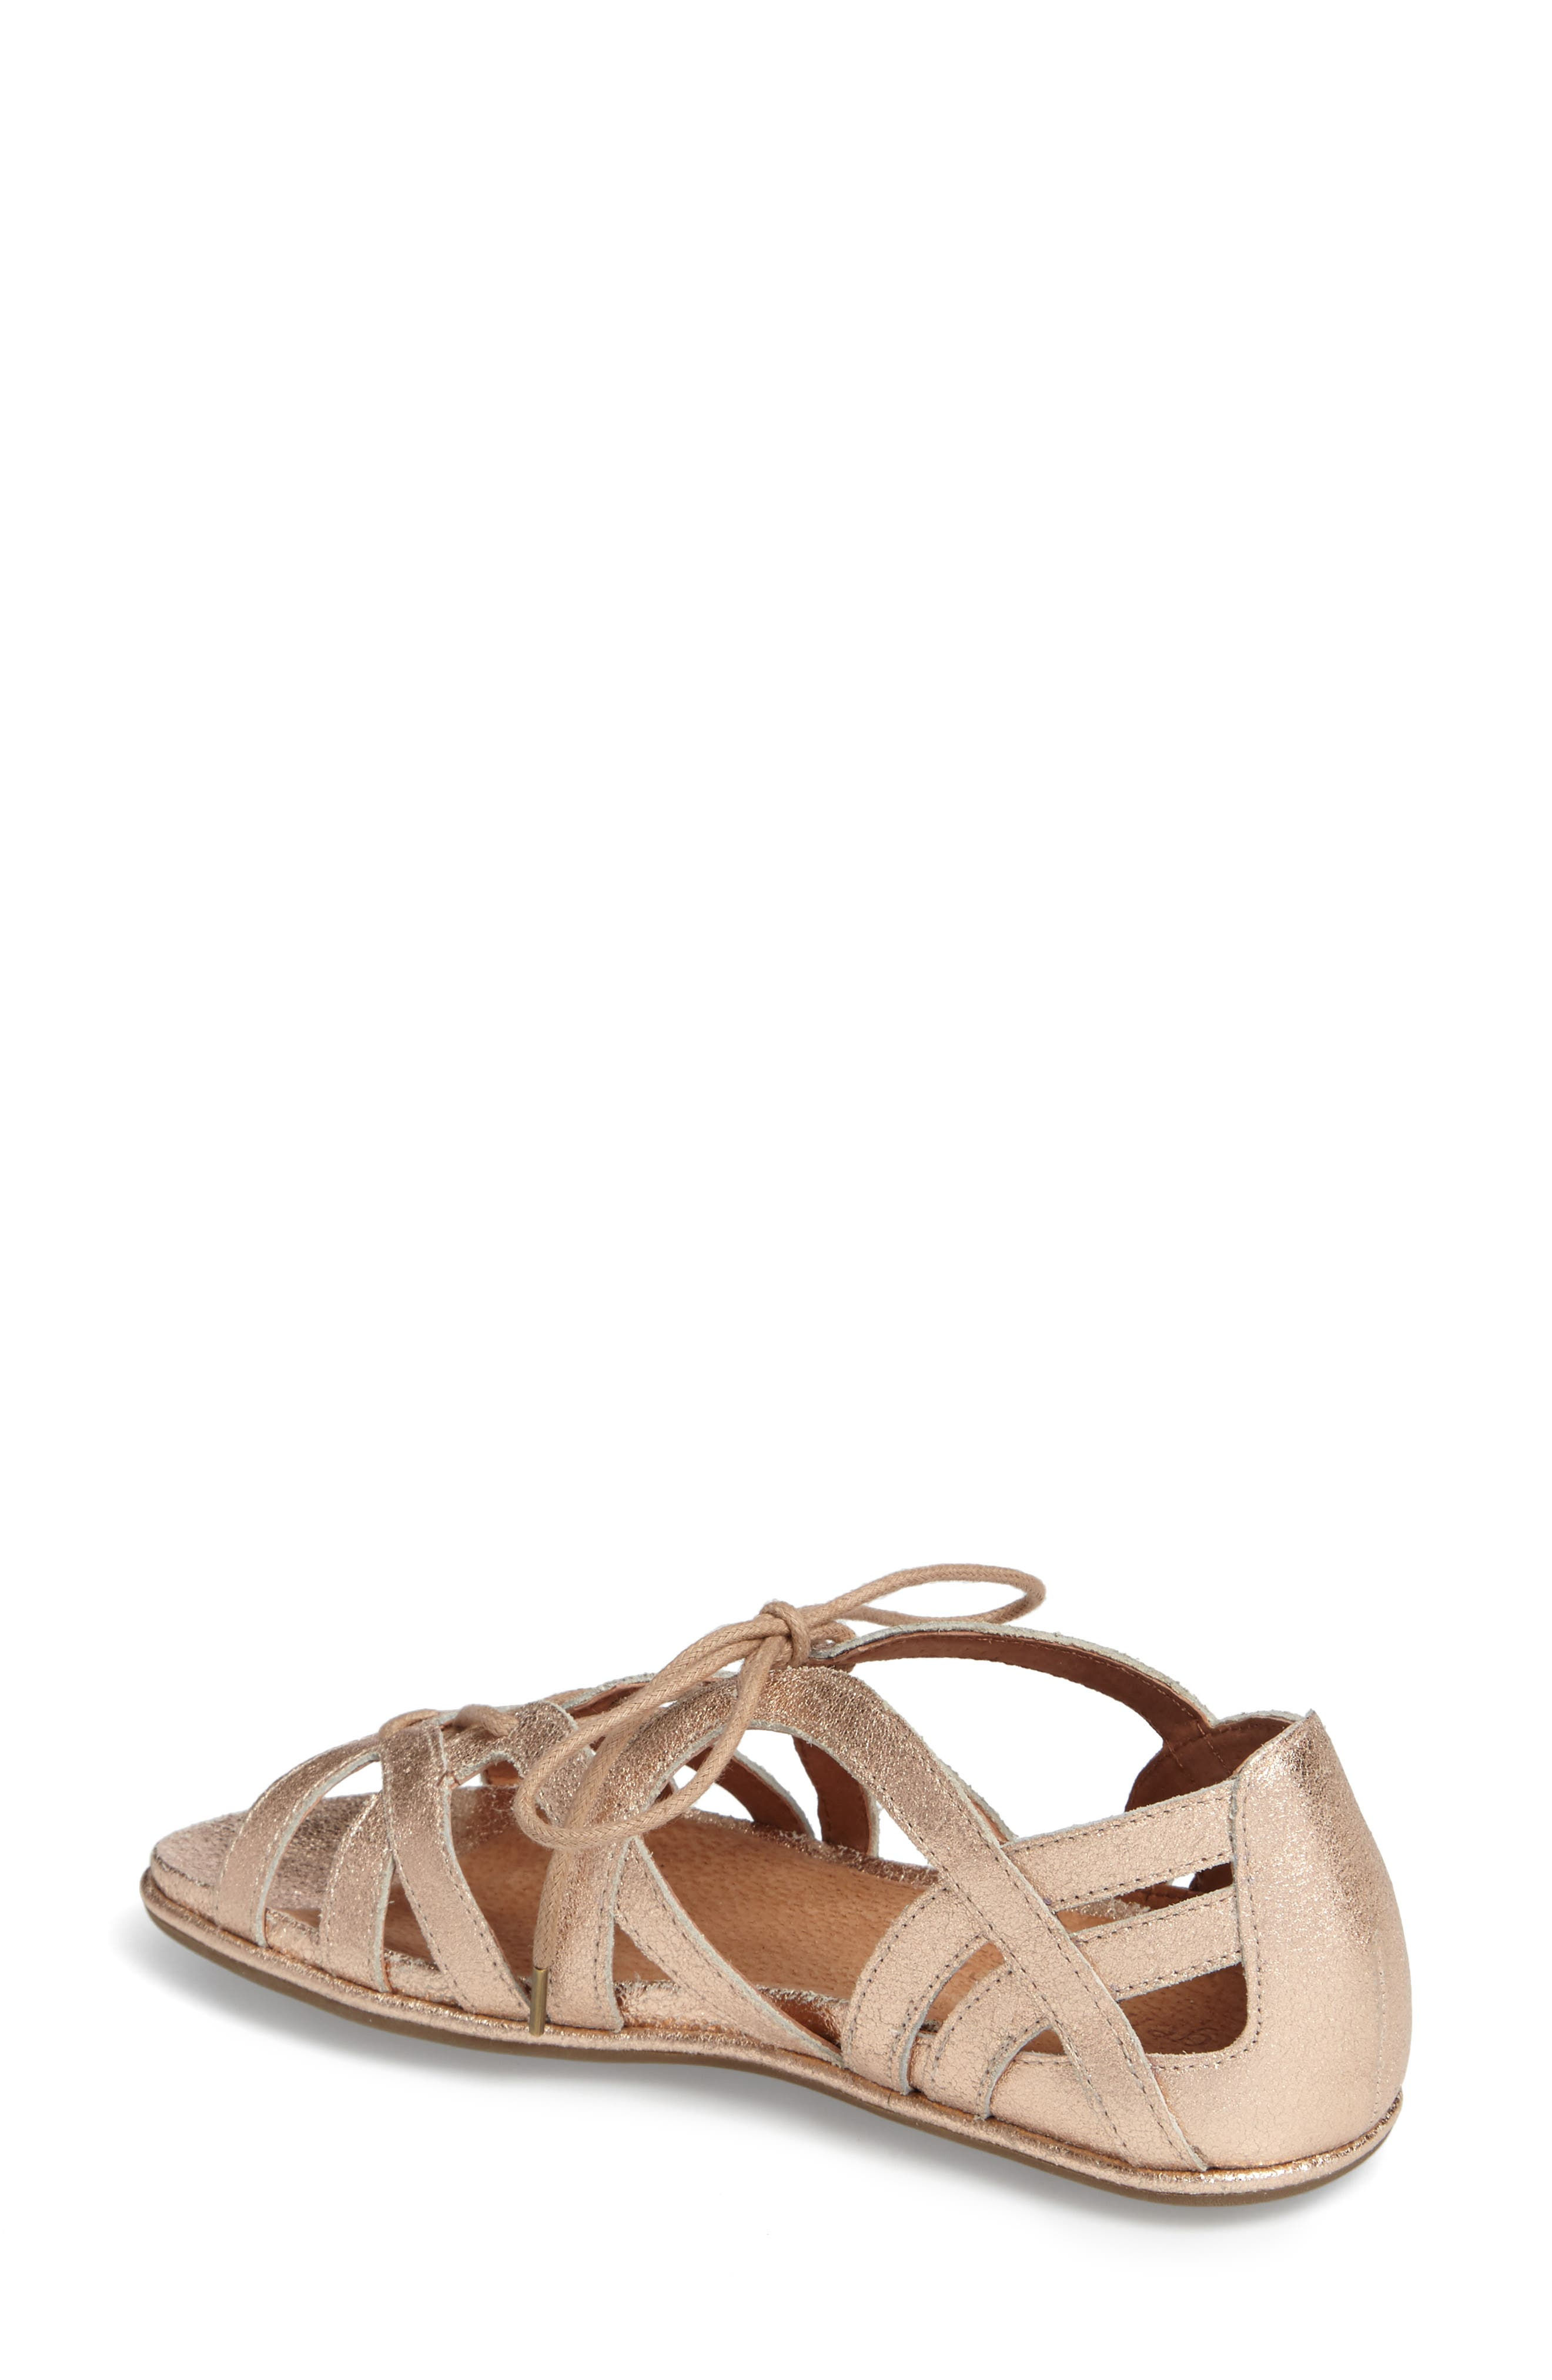 Alternate Image 2  - Gentle Souls 'Orly' Lace-Up Sandal (Women) (Nordstrom Exclusive)